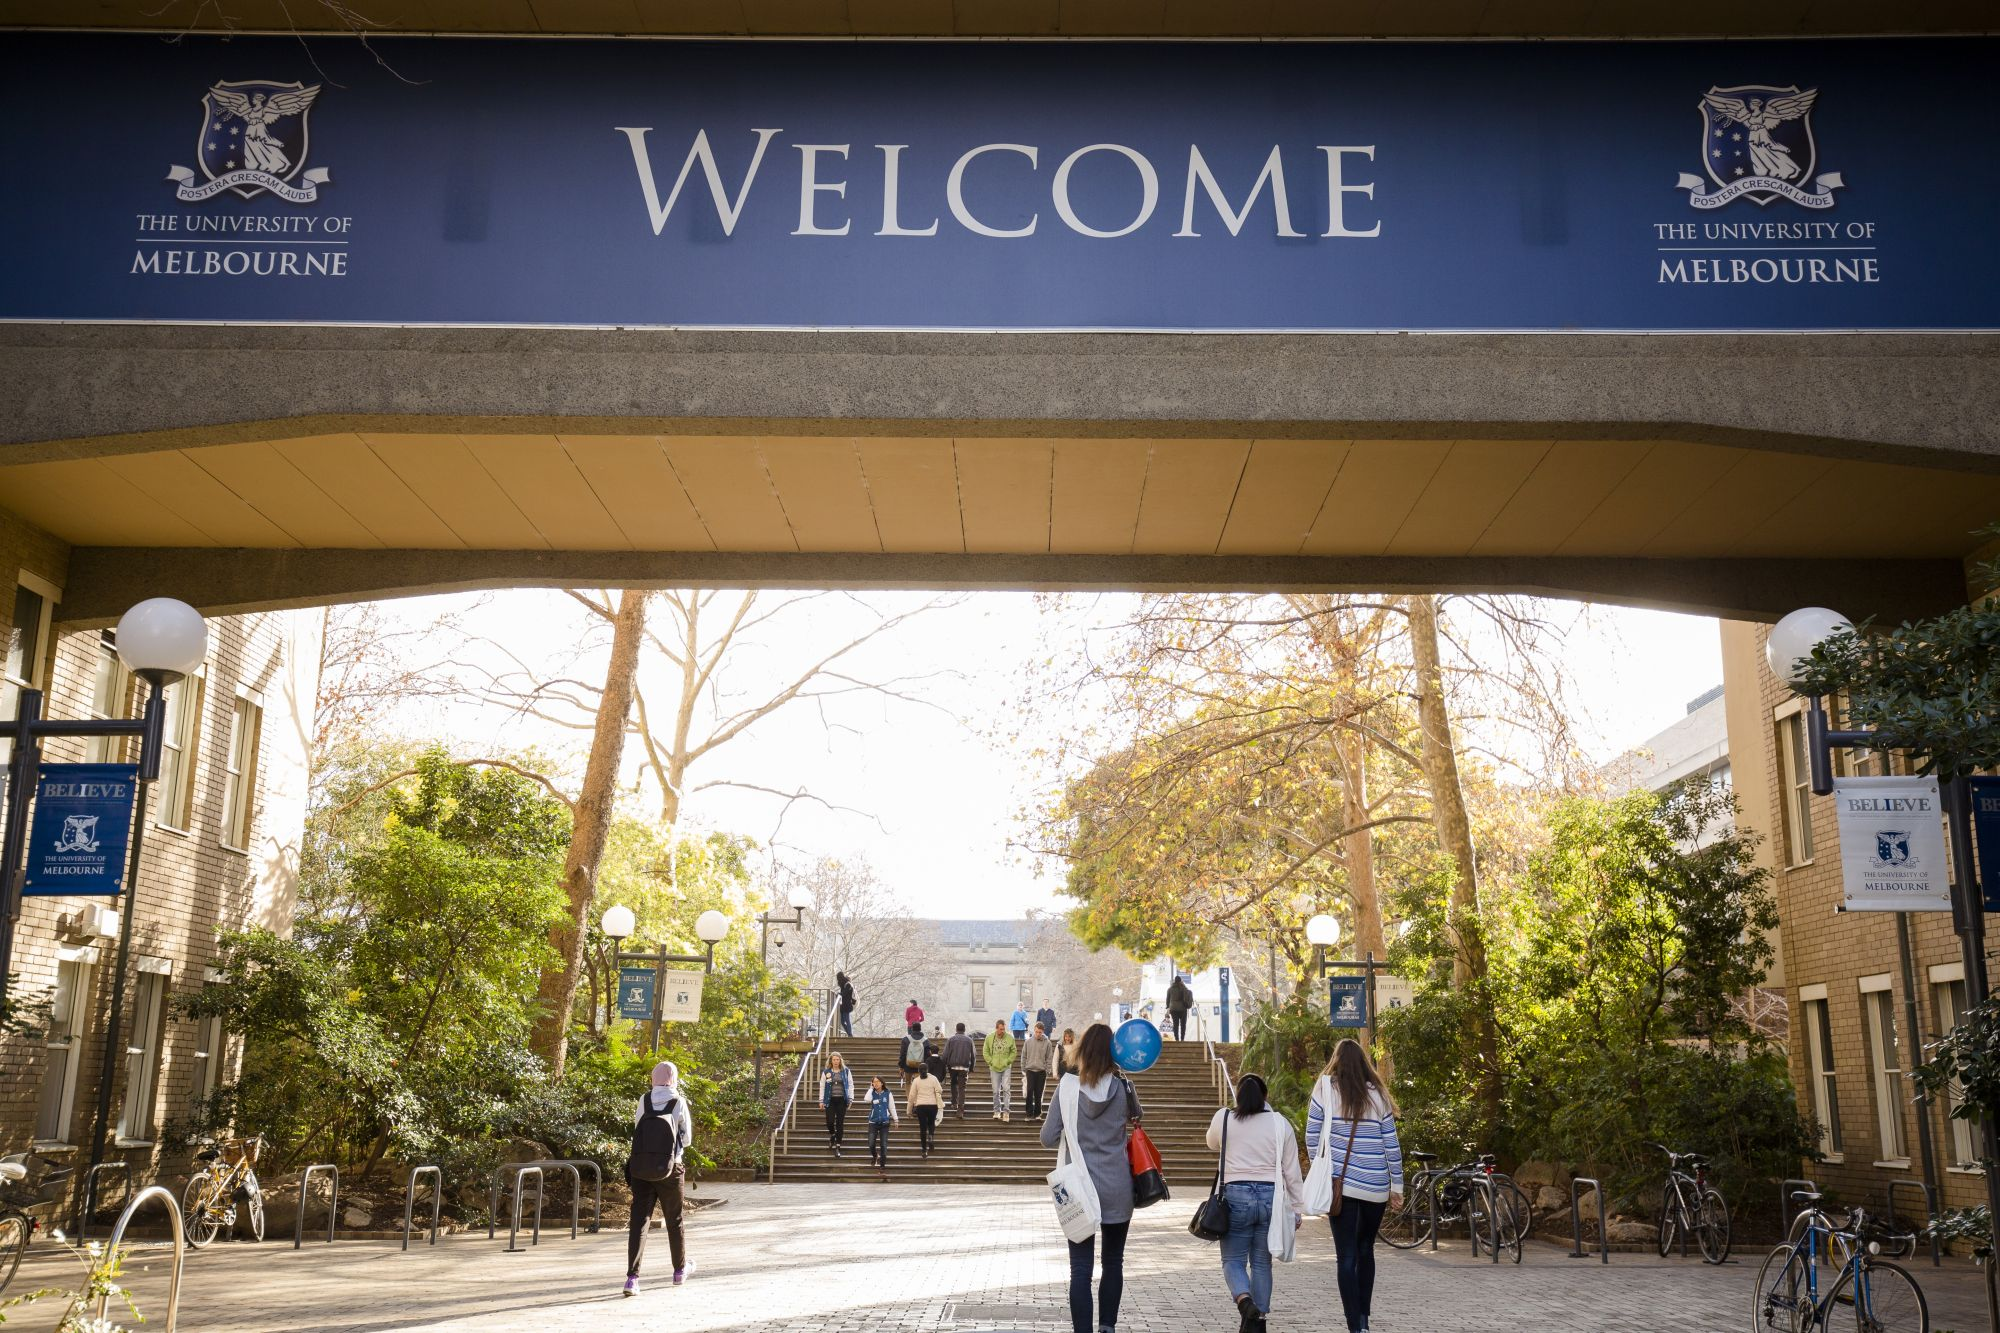 University of Melbourne - Welcome